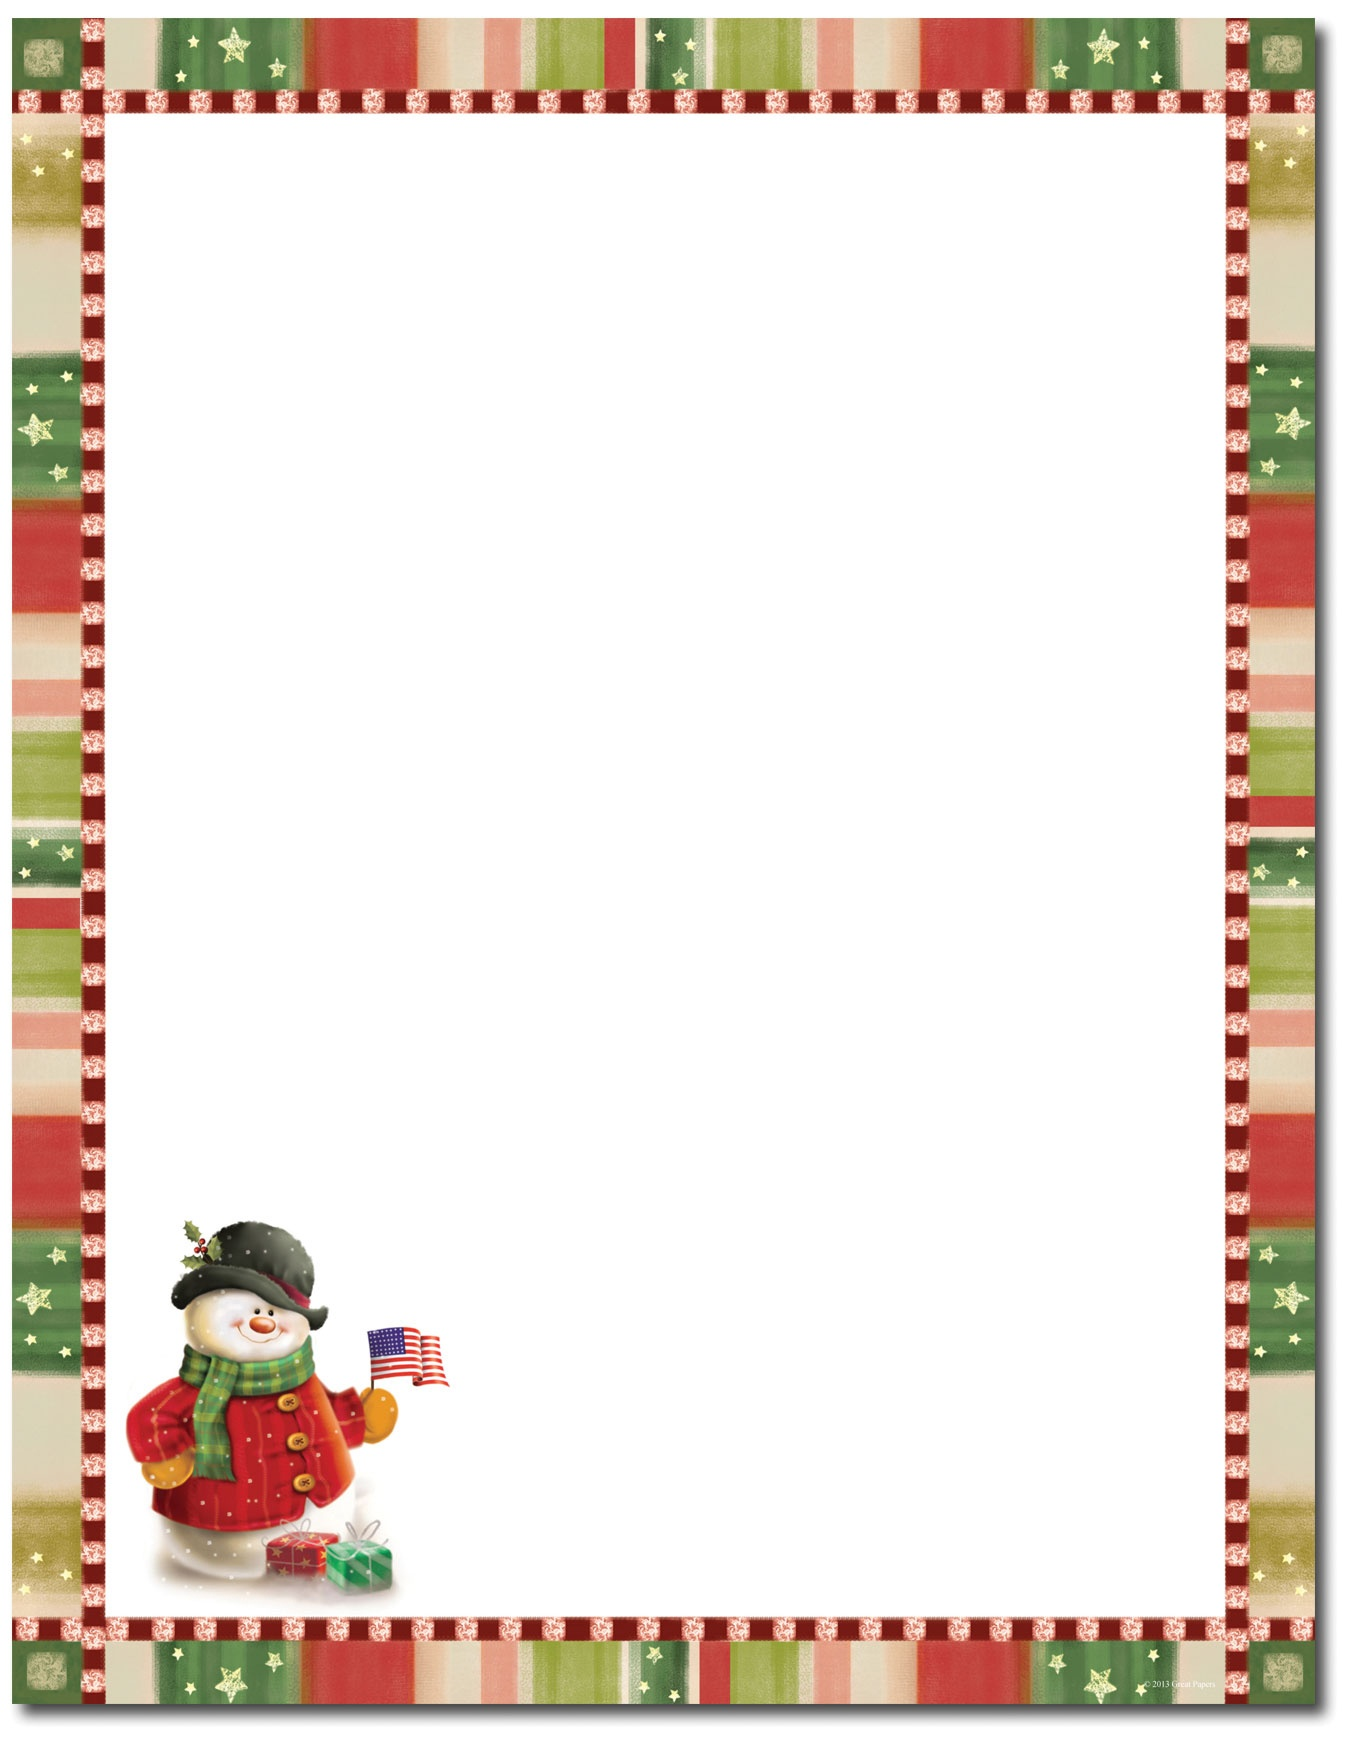 Free Christmas Stationary Cliparts, Download Free Clip Art, Free - Free Printable Christmas Paper With Borders